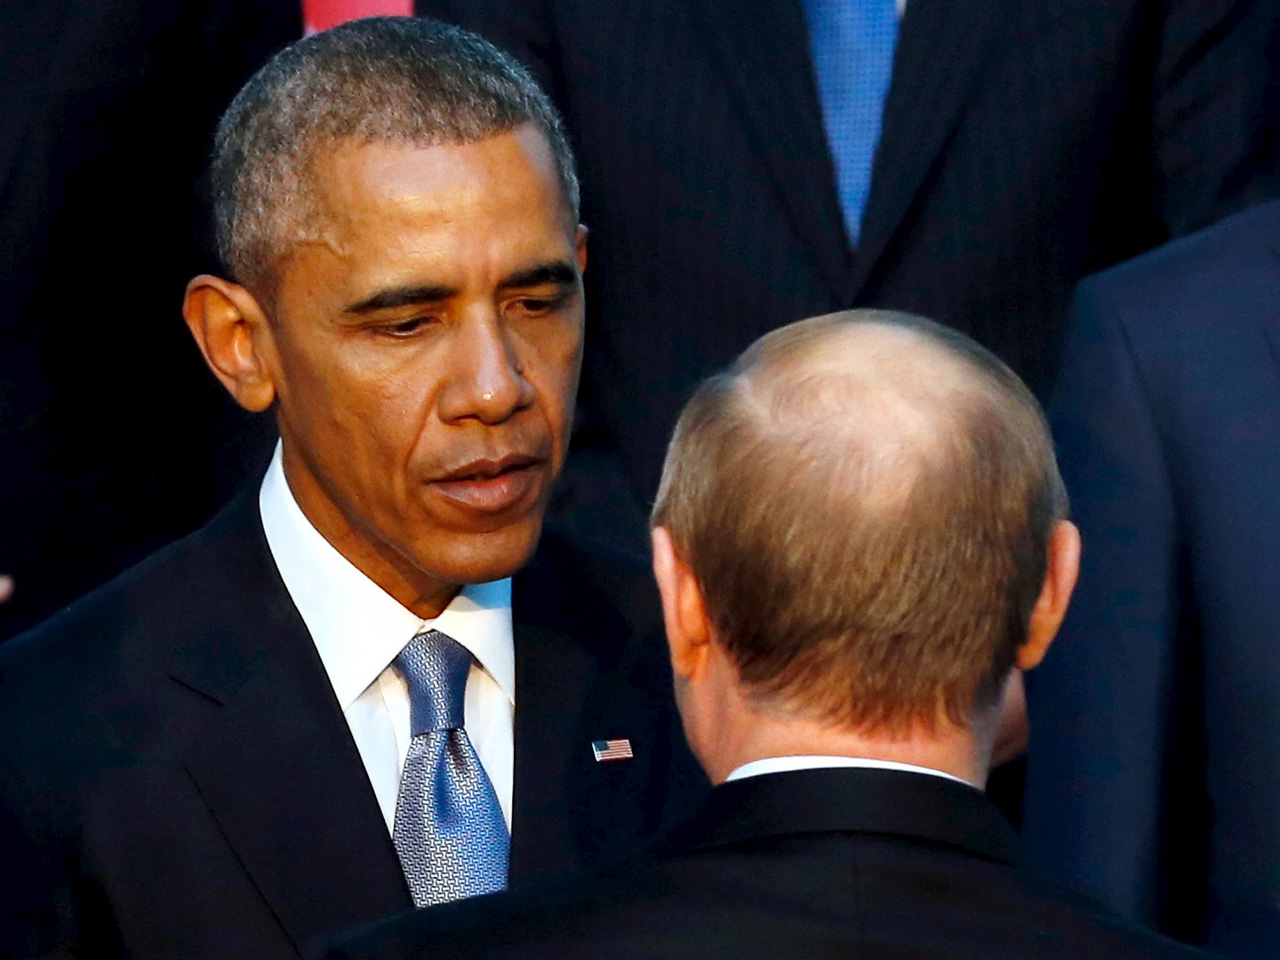 Obama And Putin Have Private Chat At G 20 Summit In Turkey Cbs News